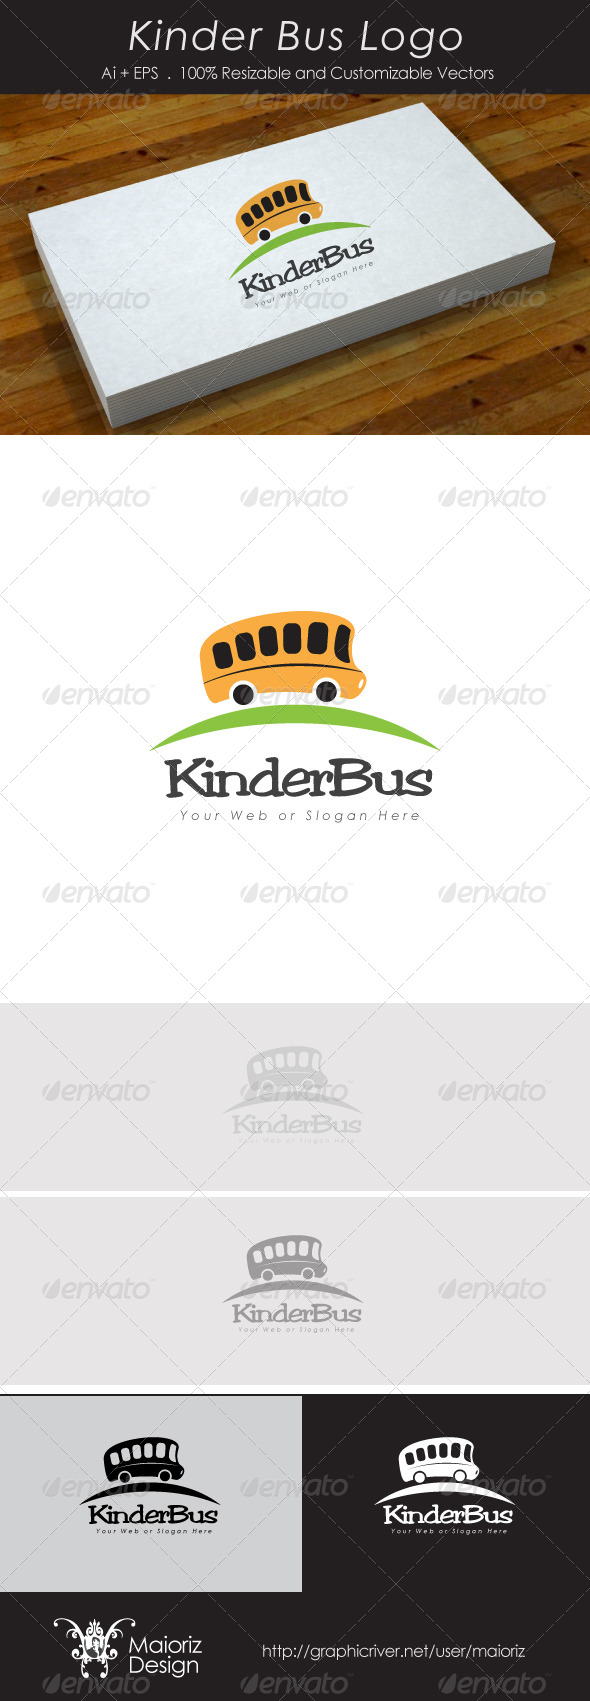 GraphicRiver Kinder Bus Logo 4042508